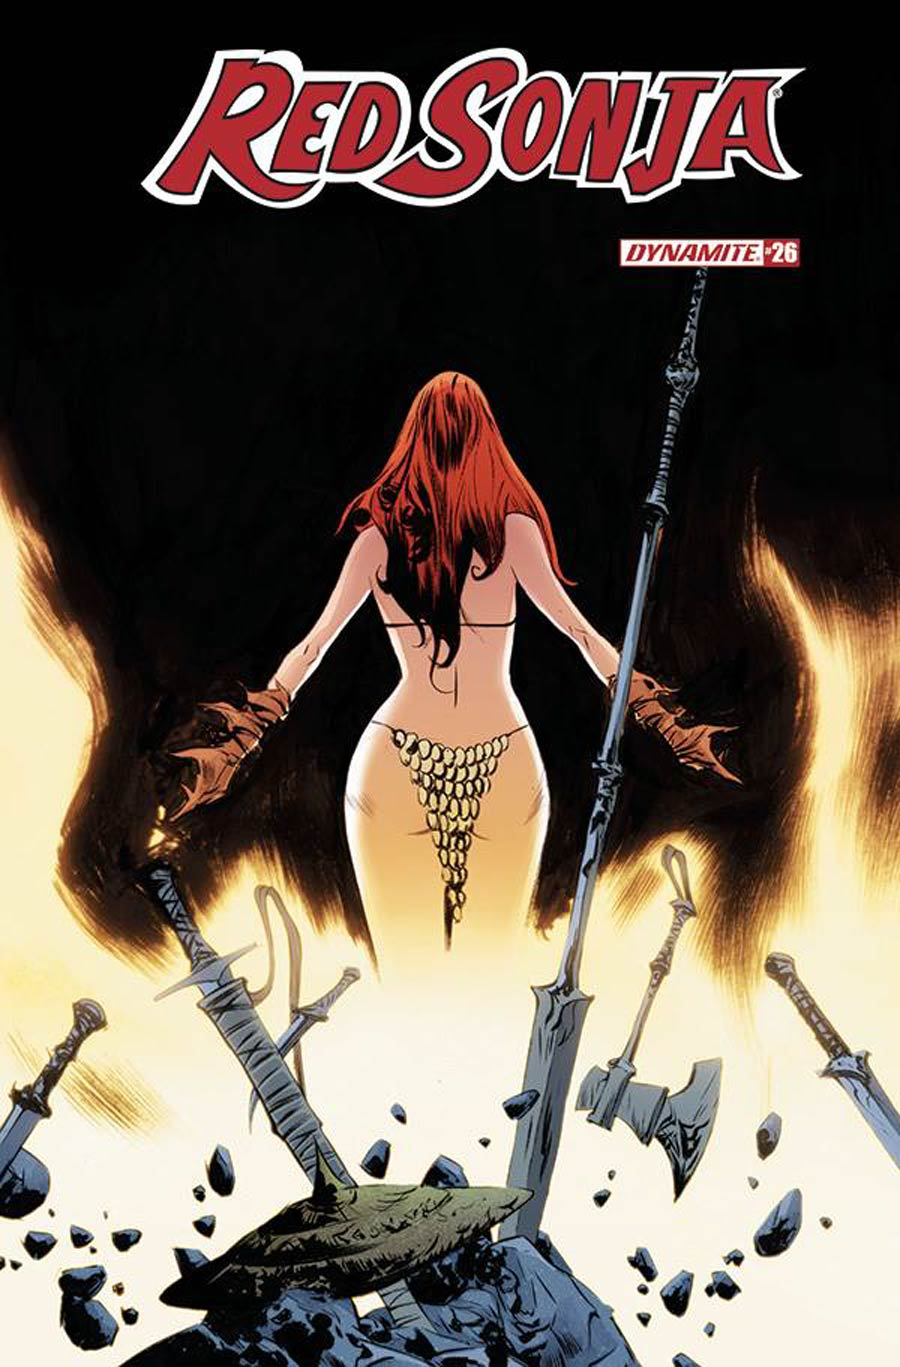 Red Sonja Vol 8 #26 Cover A Regular Jae Lee Cover